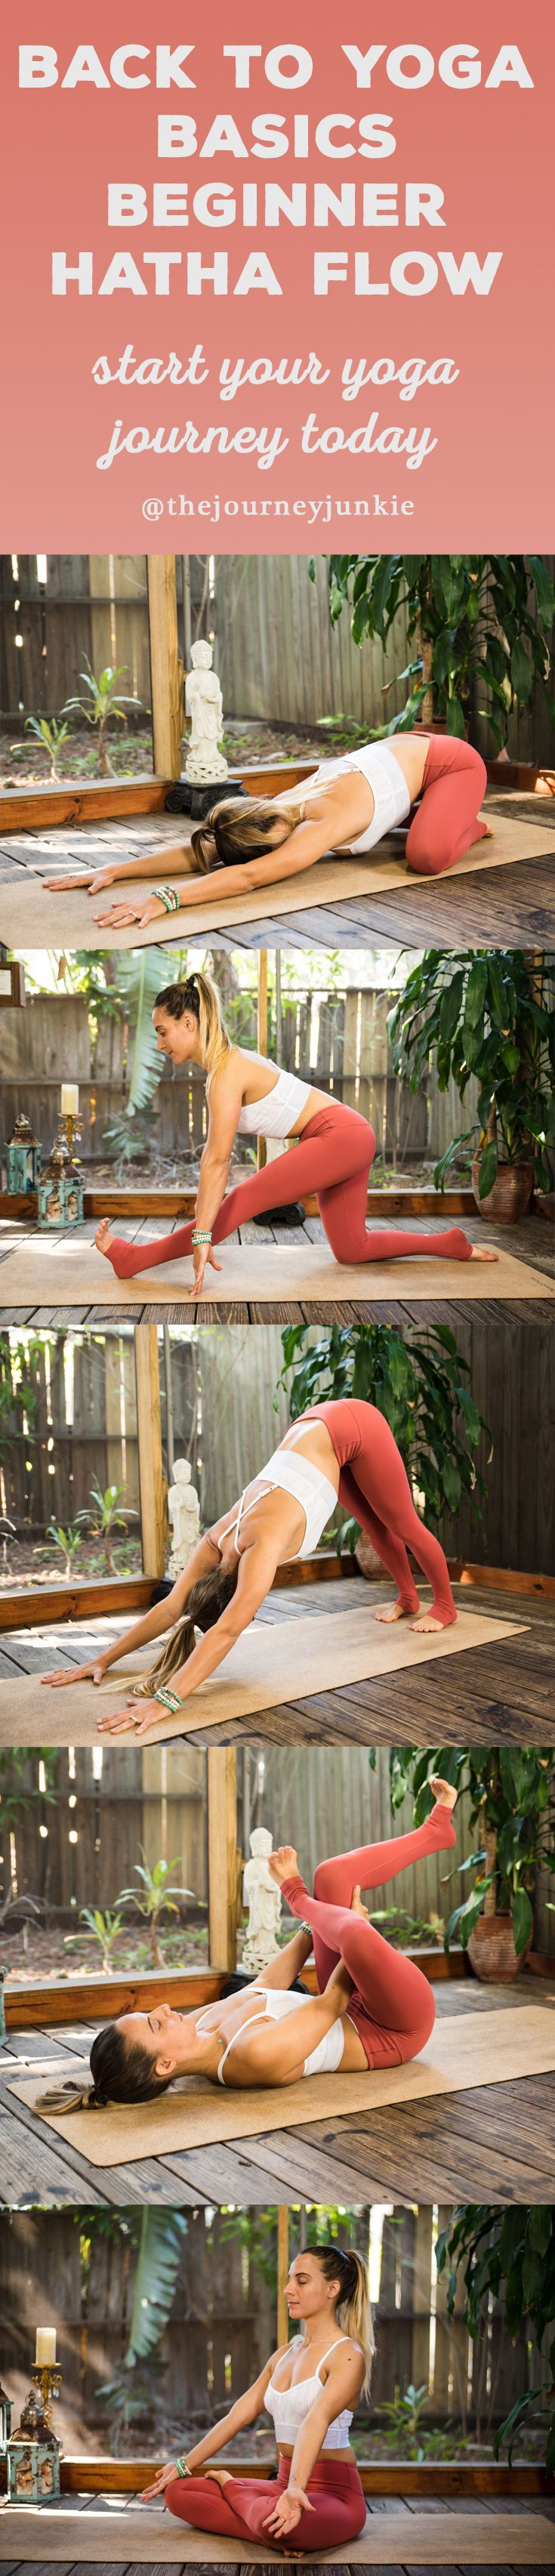 Calling all beginner yogis + yogis who need a refresh! Welcome to your beginner hatha yoga flow to learn the basics, cultivate breath, and create movement!